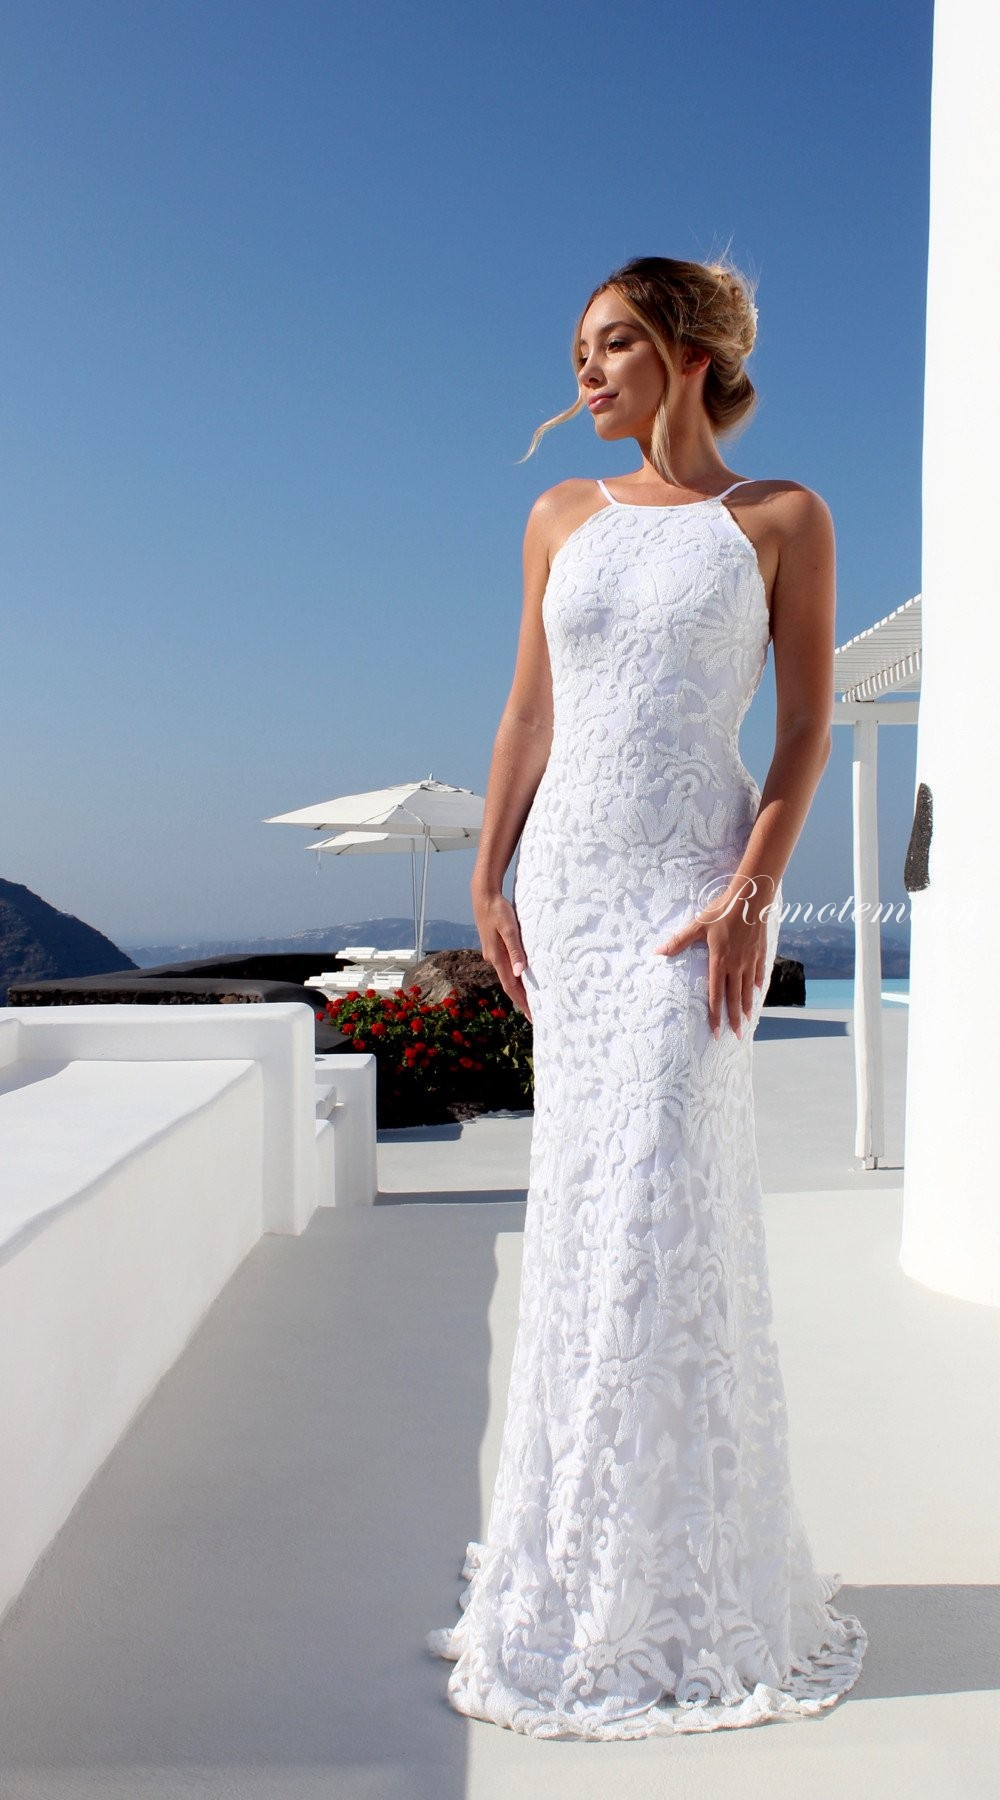 Sexy Halter Backless Mermaid Wedding Dress With Spaghetti Straps Lace Up Low Open Back White Lace Bohe Beach Wedding Dresses 991 From Happybridal